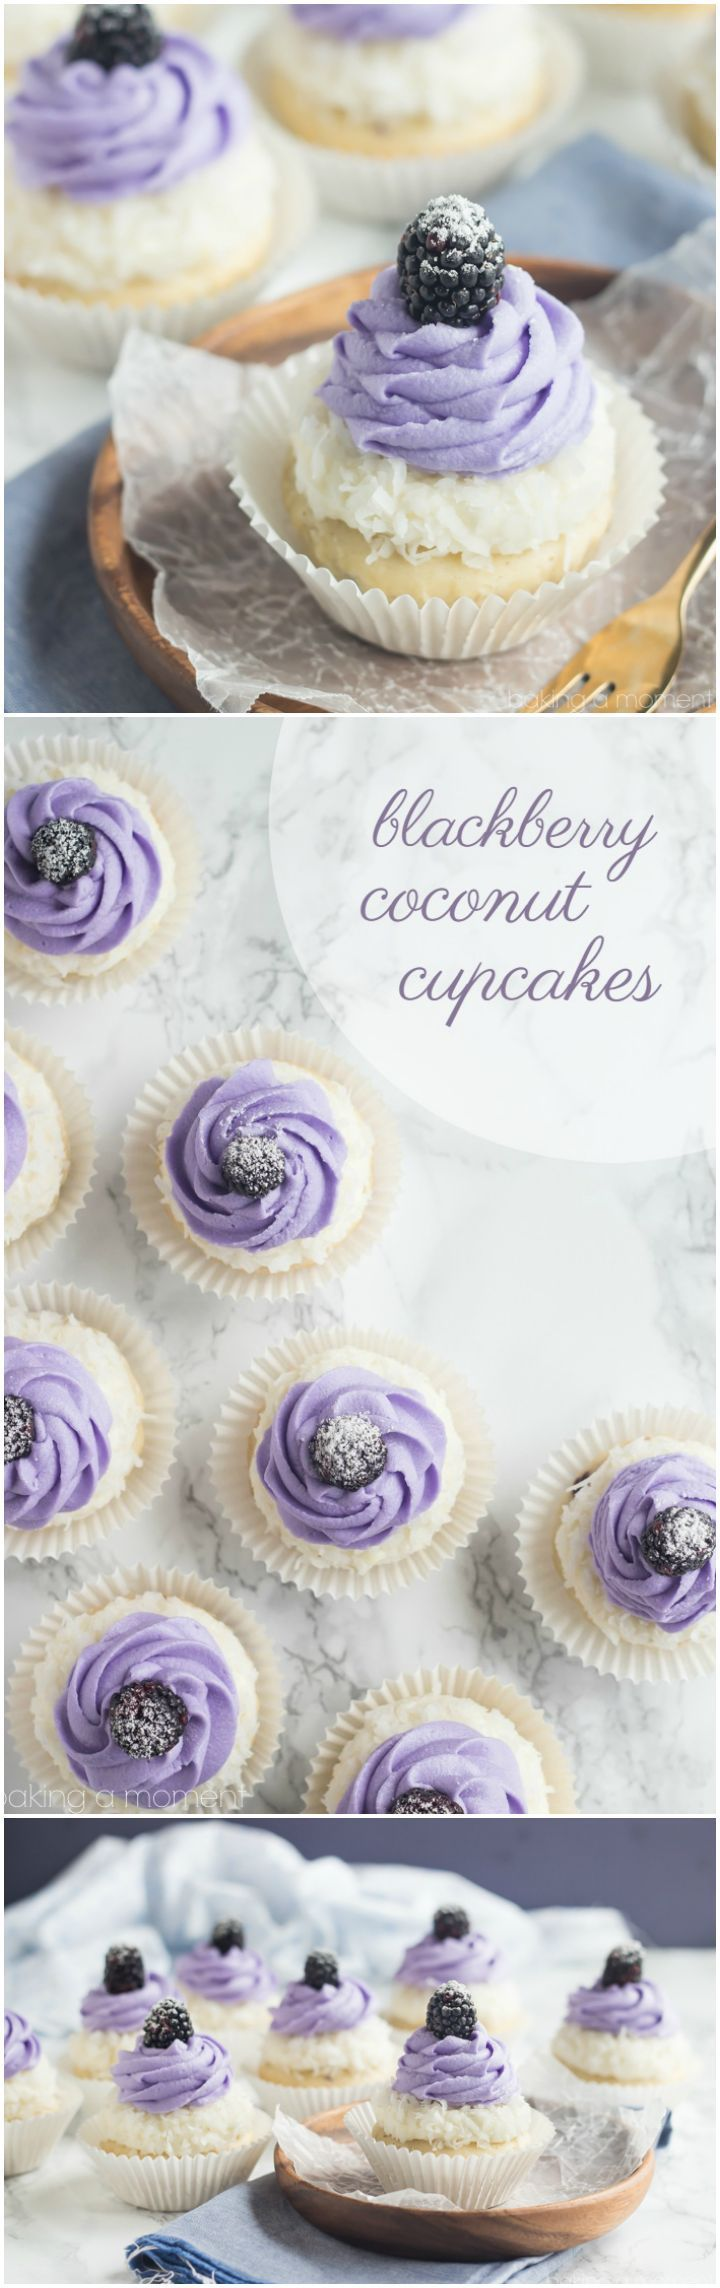 Blackberry Coconut Cupcakes- oh my! So dreamy and light, and that blackberry filling was such a fun surprise! ~ http://bakingamoment.com